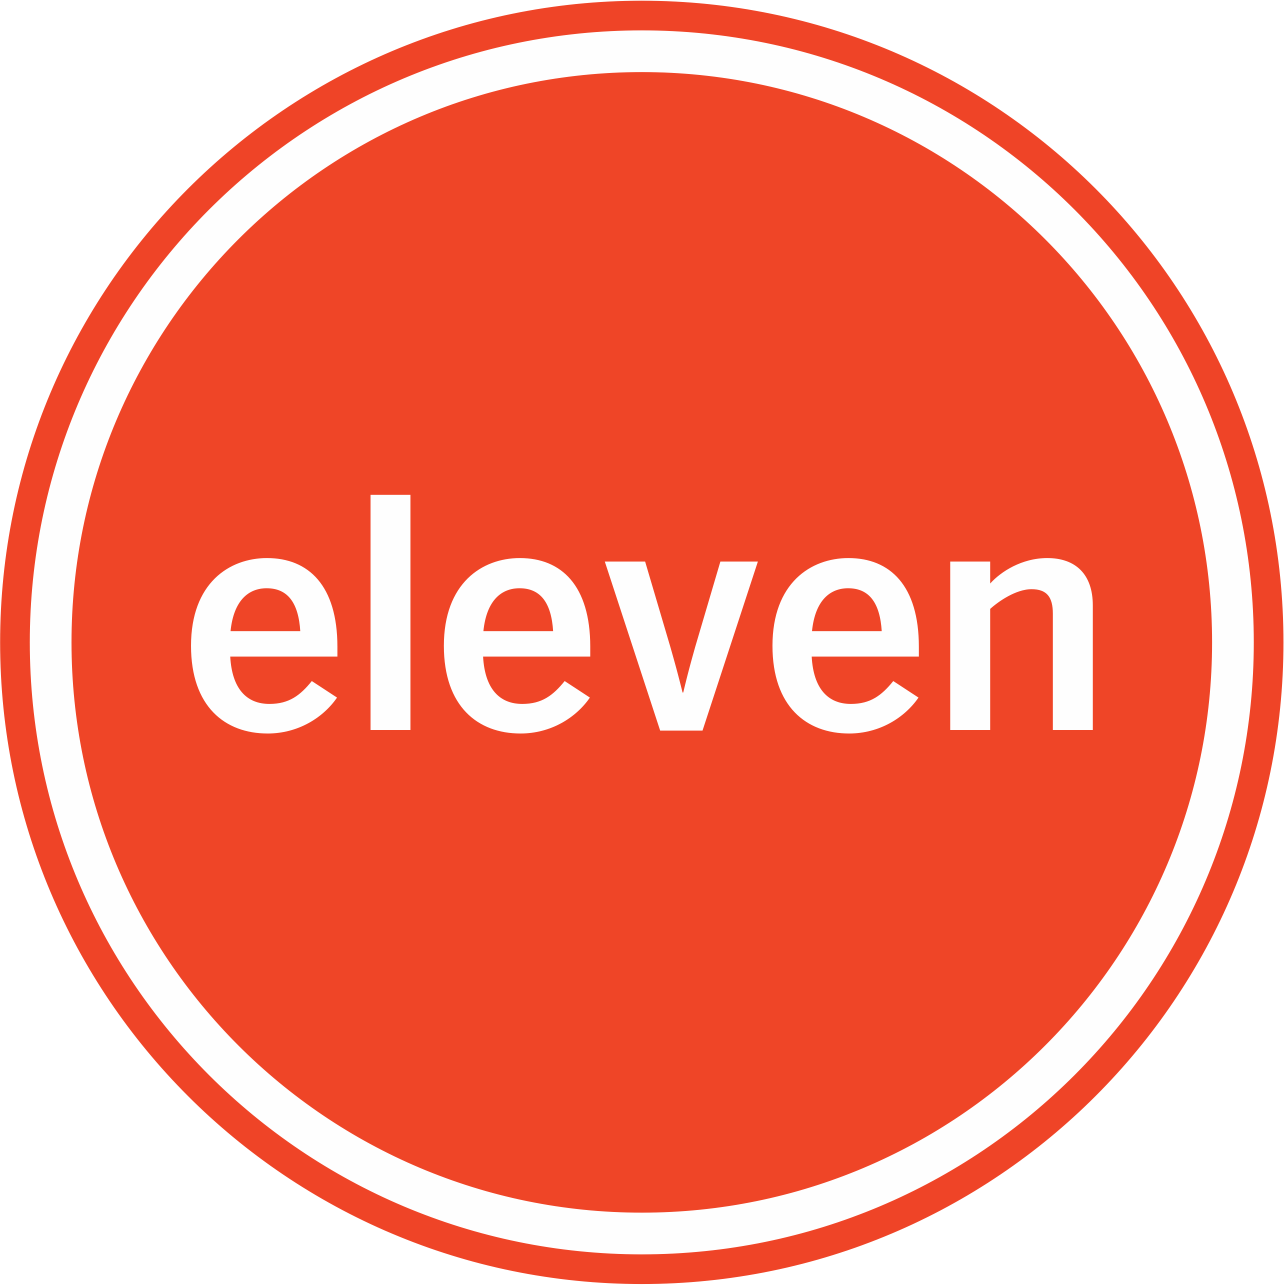 eleven-eleven1year-logo.png